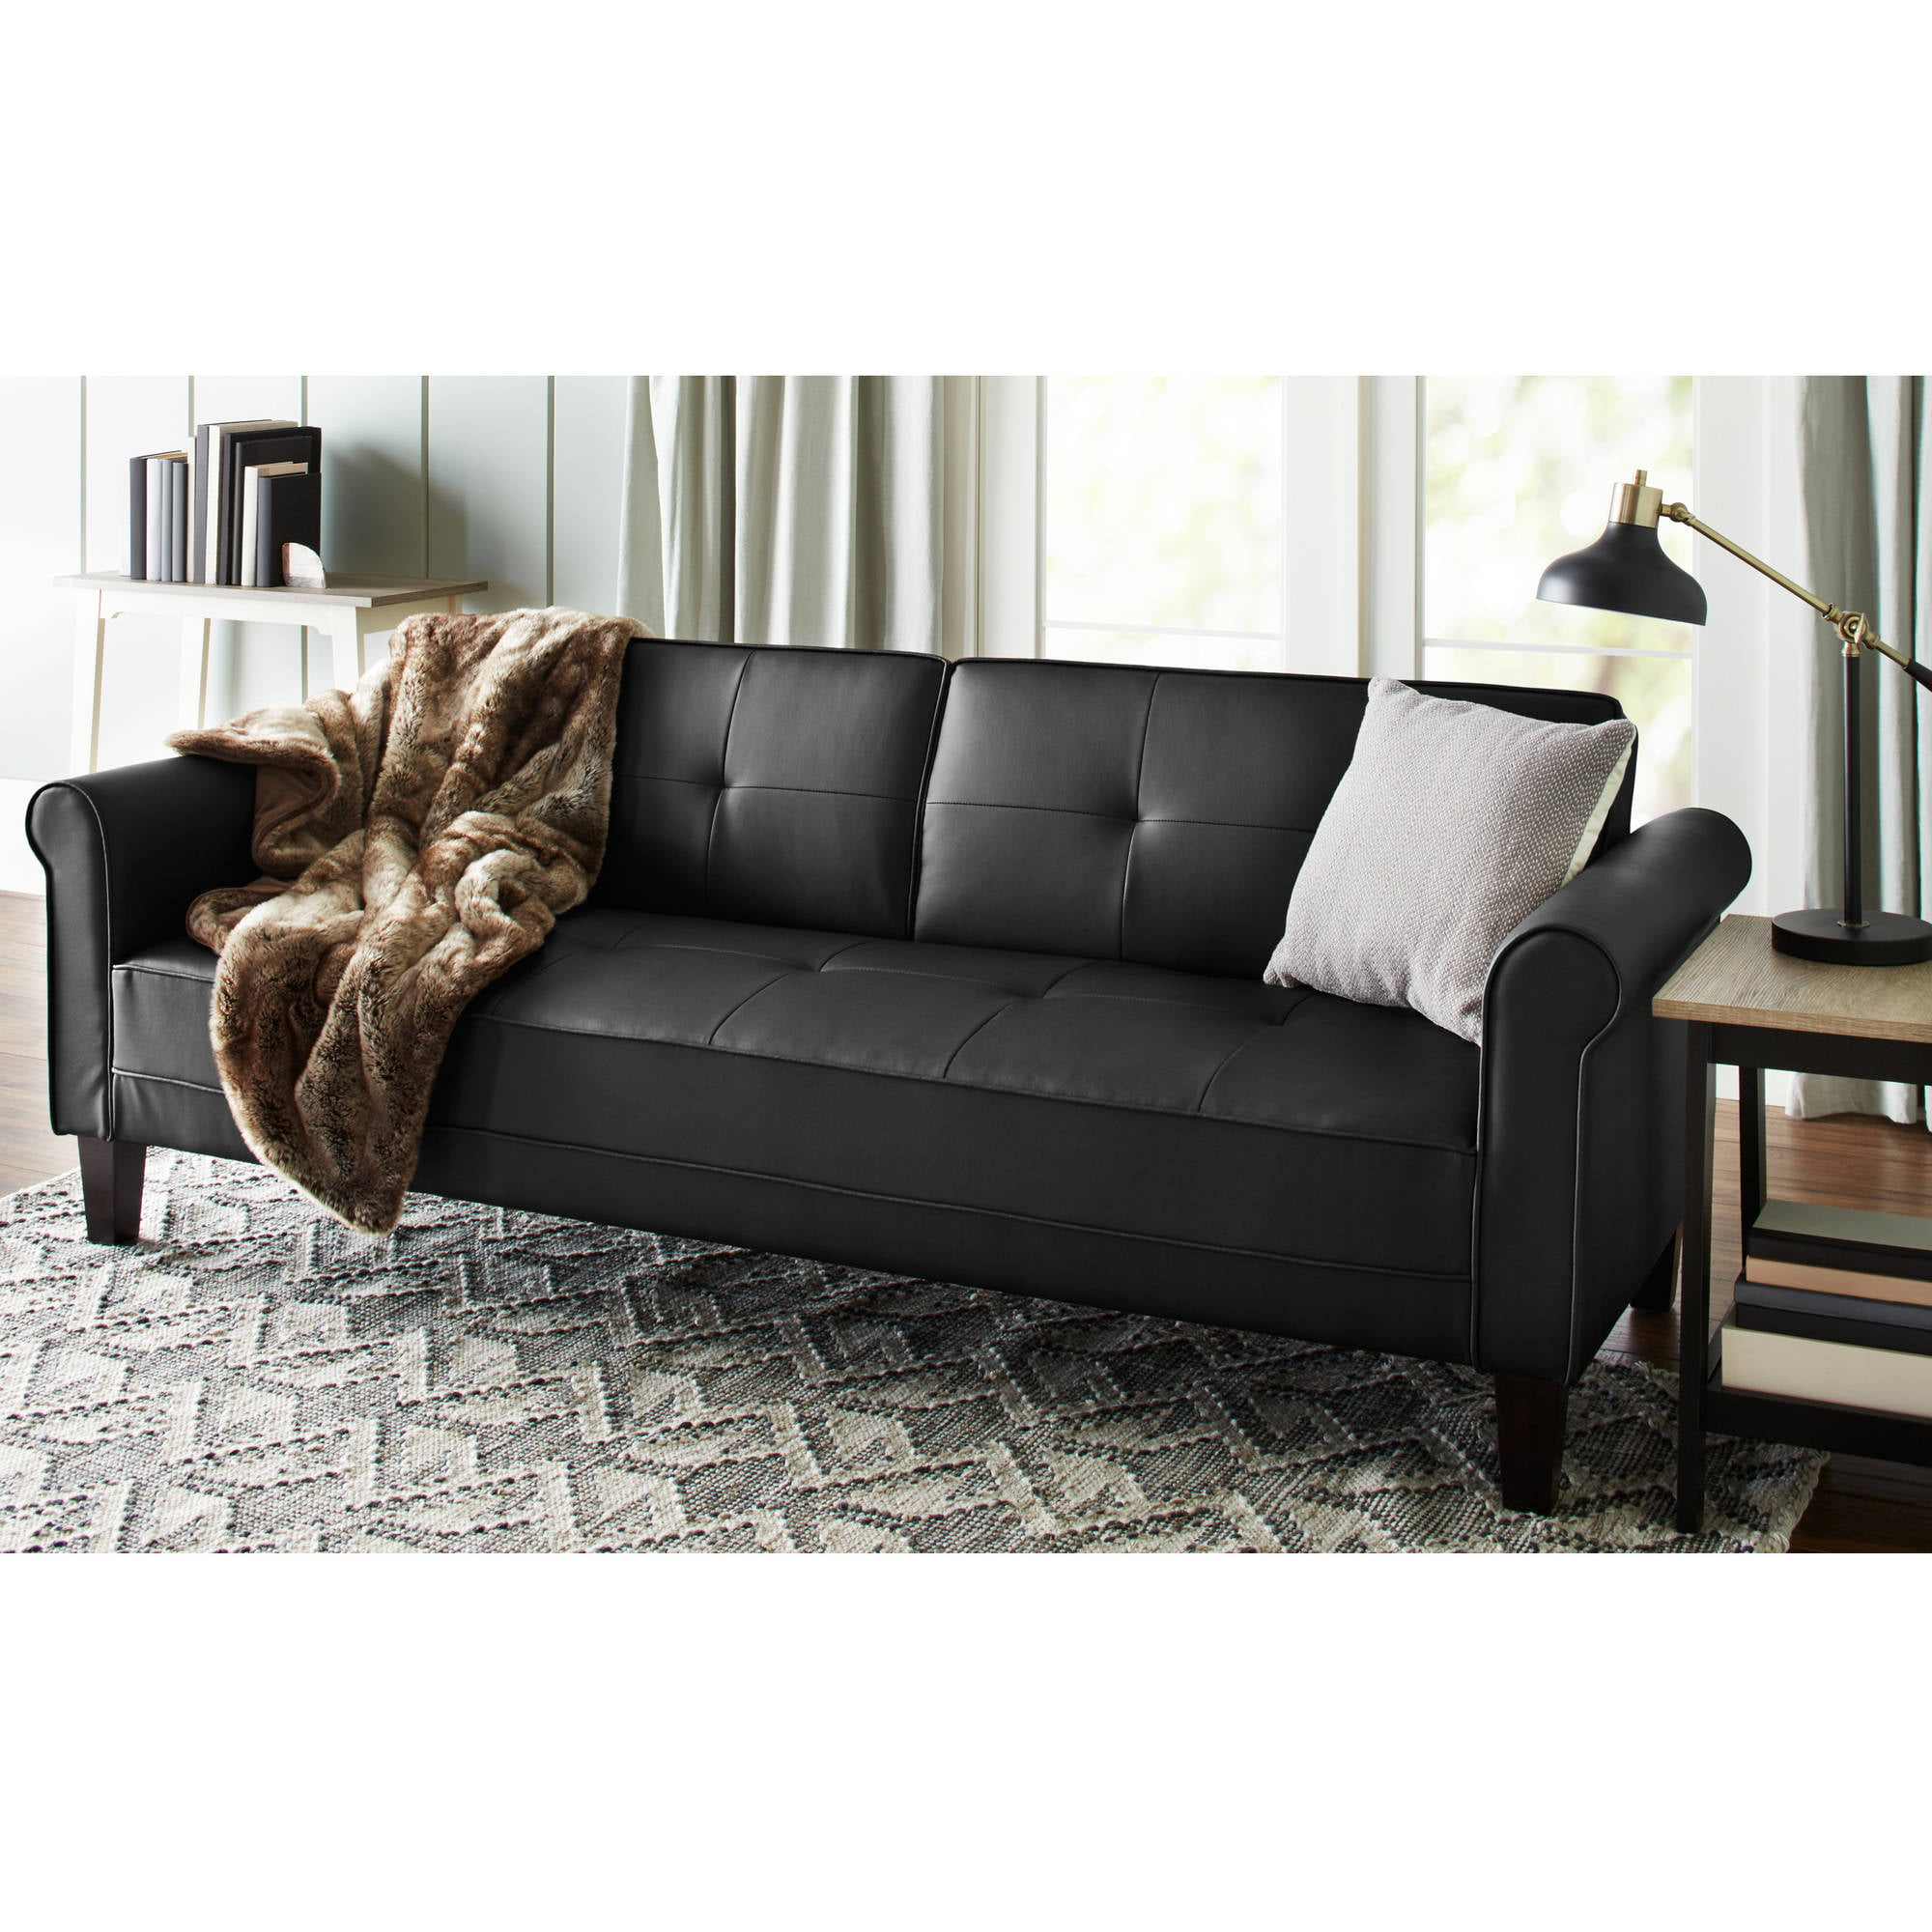 Coaster Samuel Bonded Leather Sofa, Multiple Colors   Walmart.com